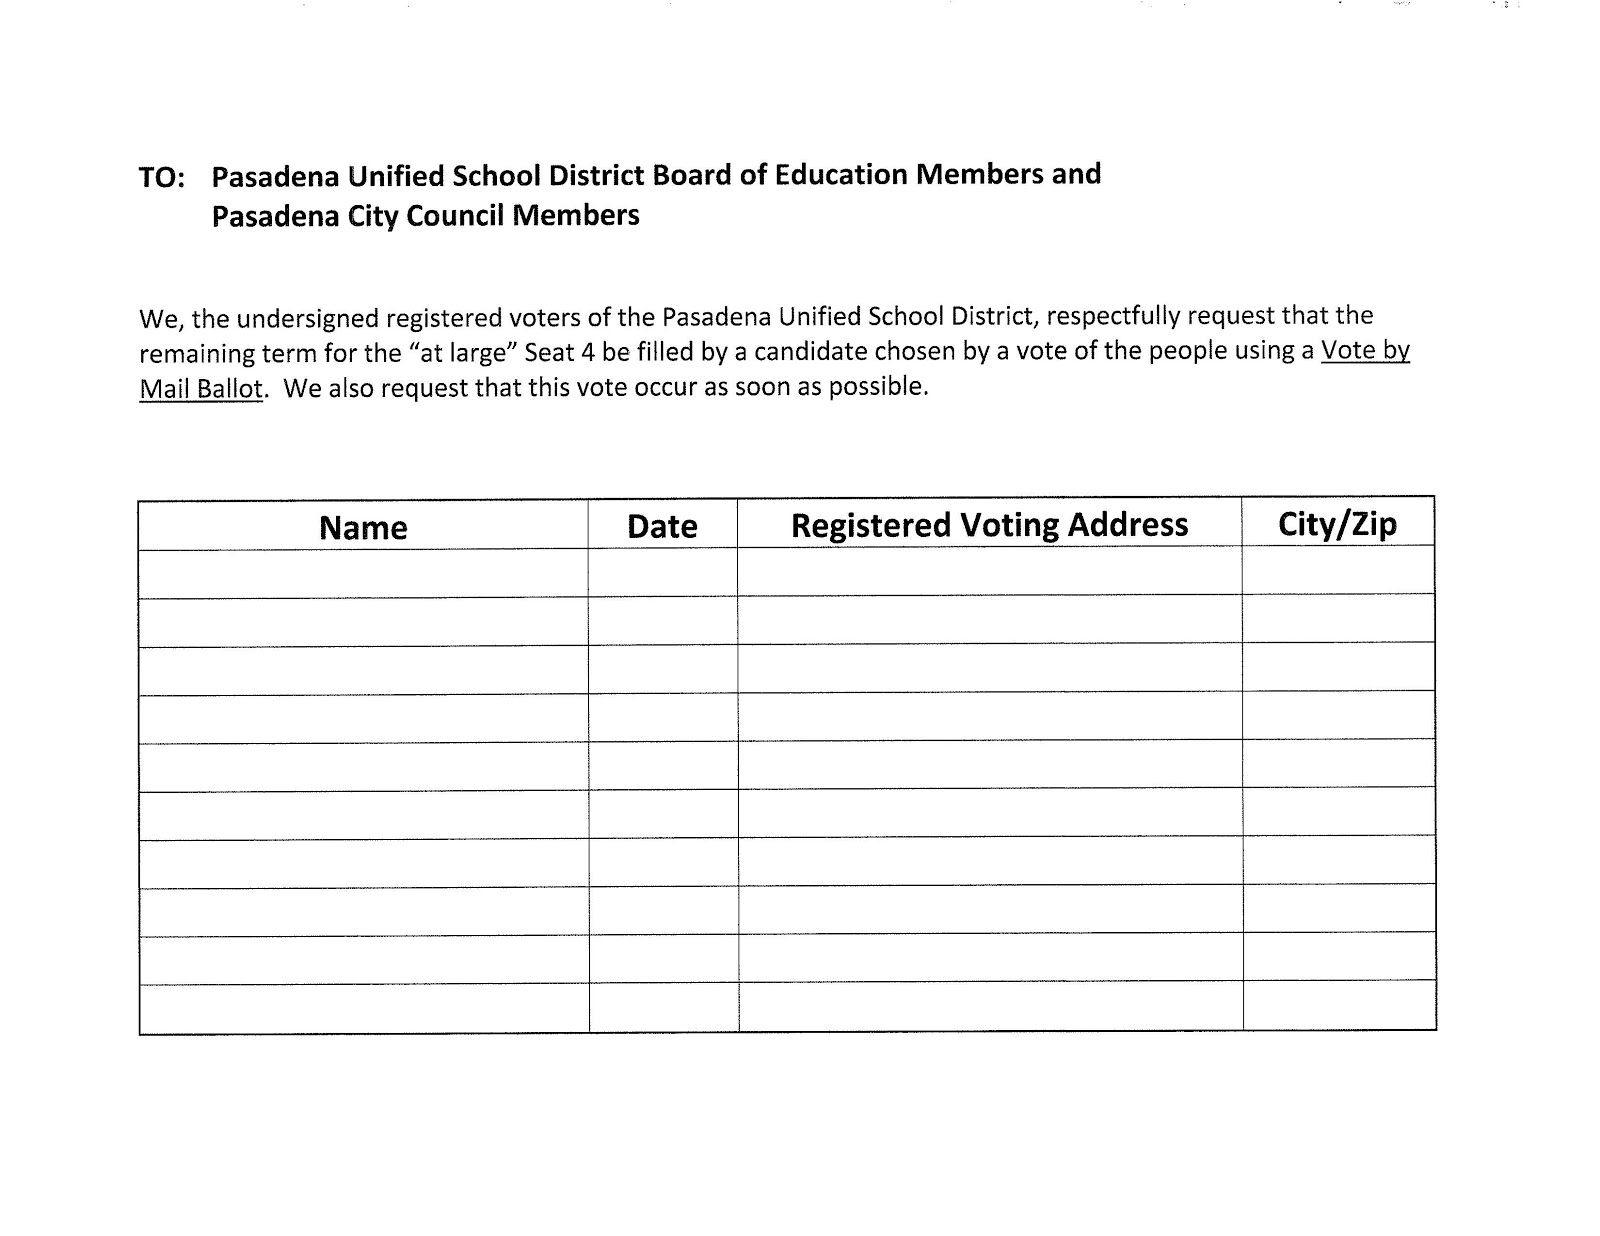 school petition template Petition Template - skiro-pk-i-pro.tk